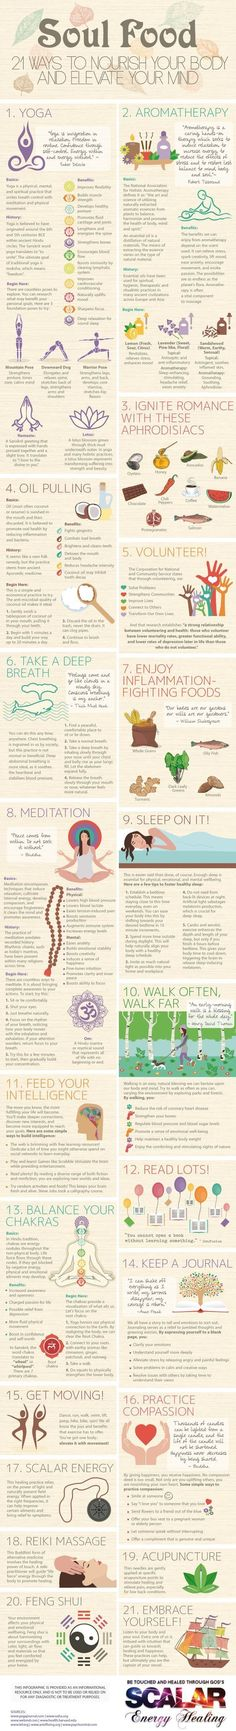 21 Ways to Nourish Your Body and Elevate Your Mind (Infographic)